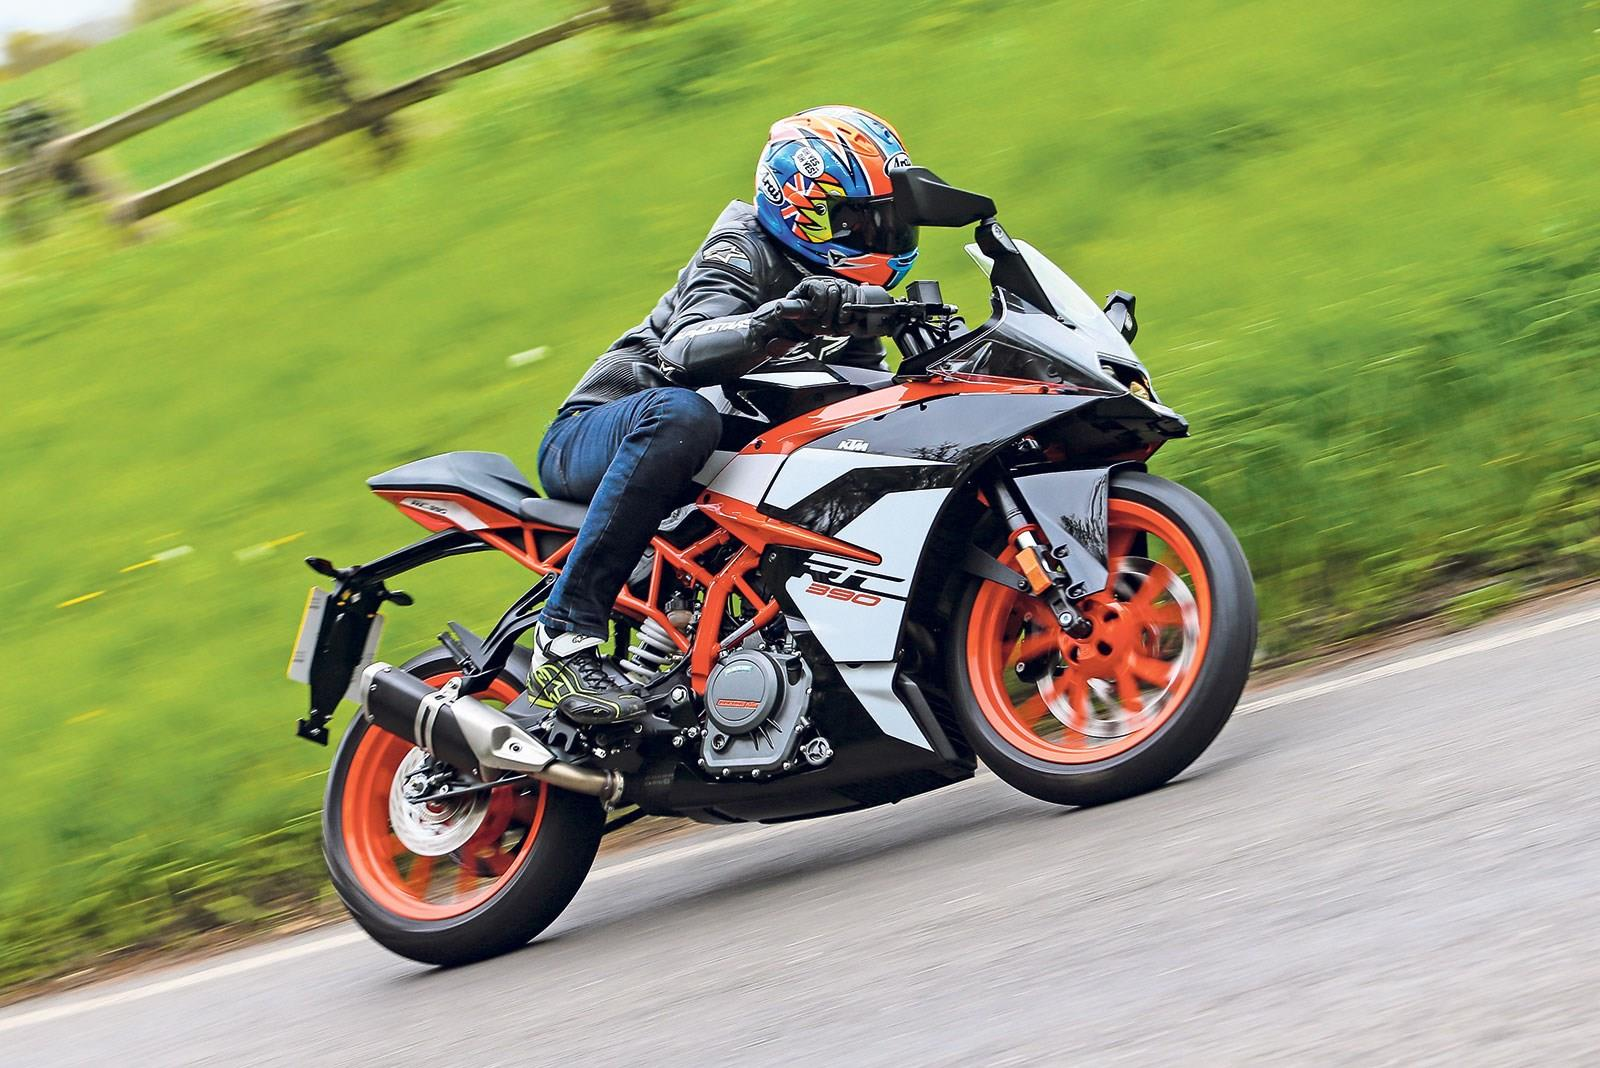 The KTM RC390 in action